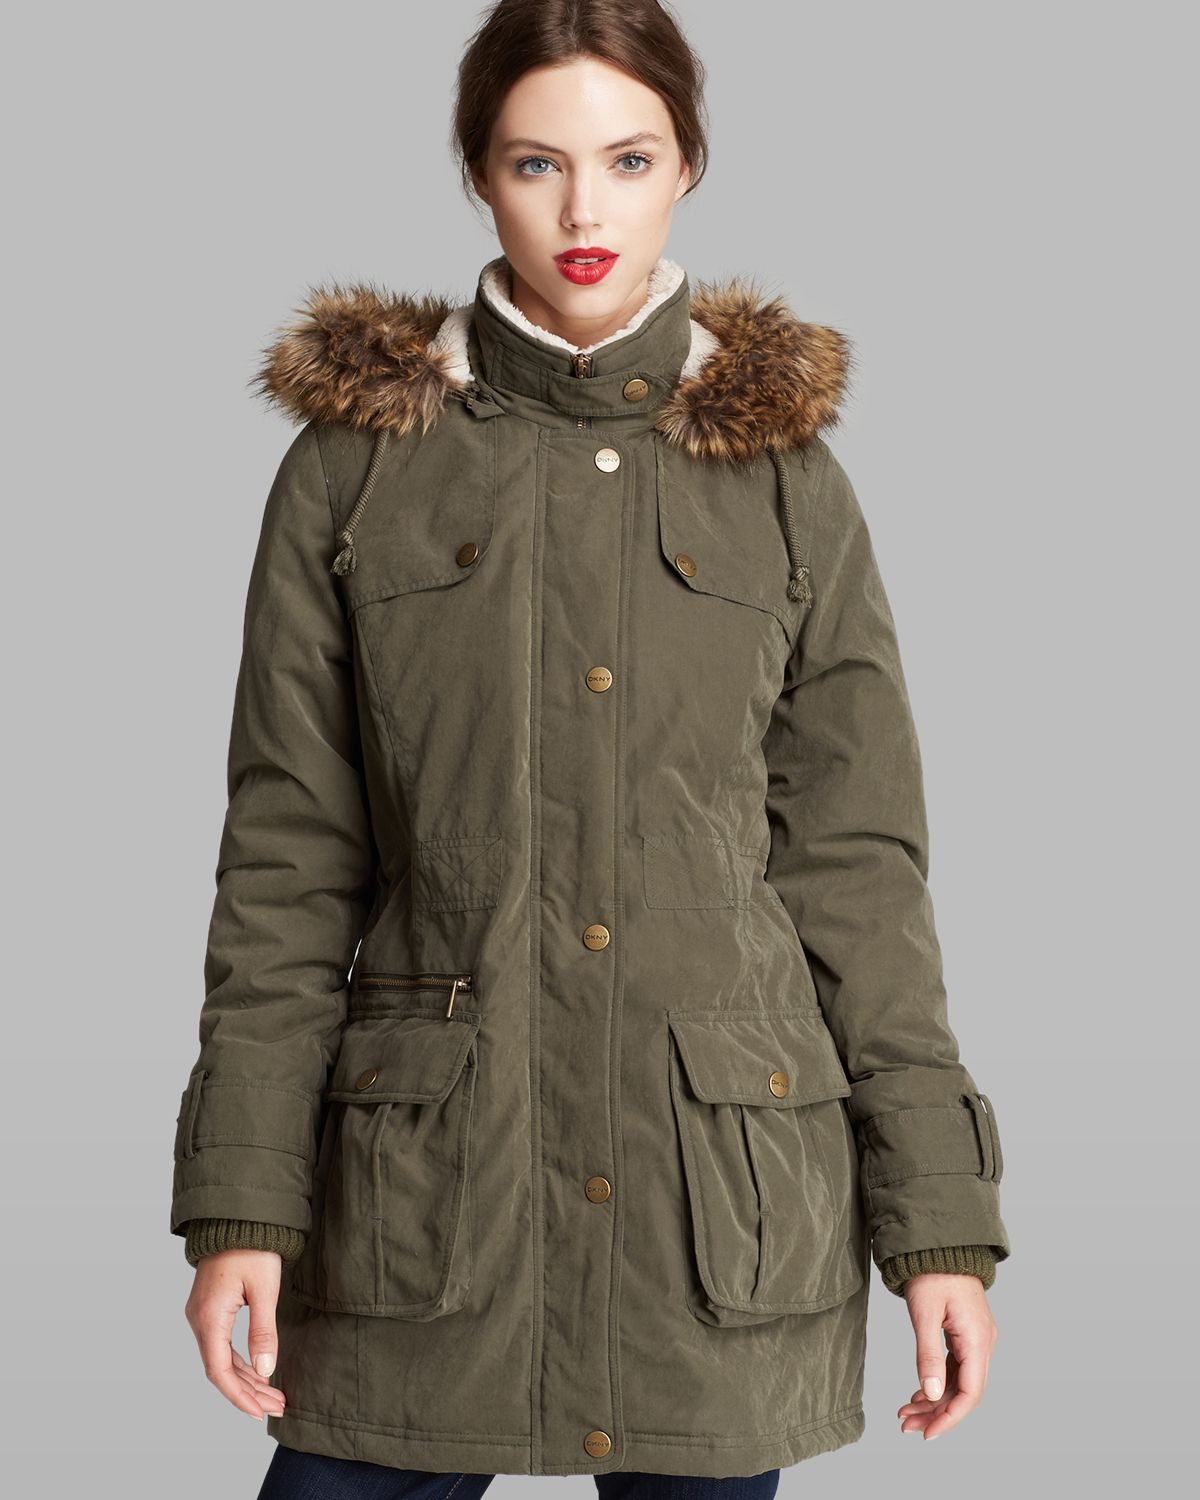 Dkny faux fur trim hooded parka loden